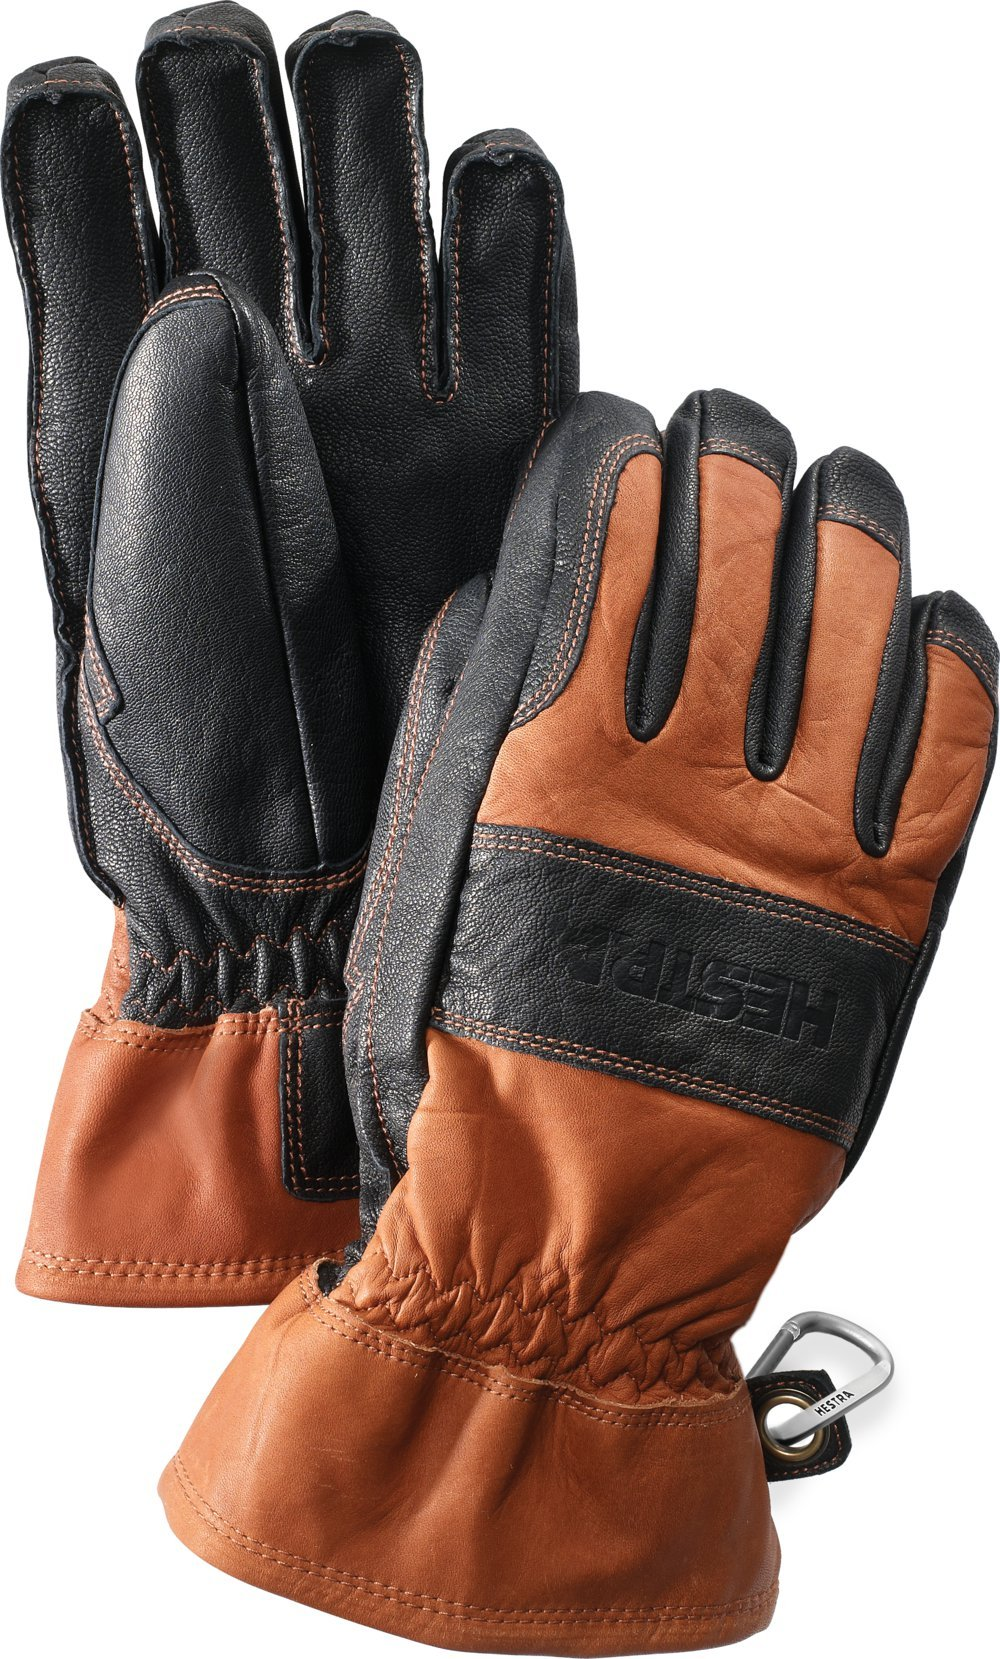 Hestra Guide Short Leather Glove with Wool Lining,Brown/Black,8